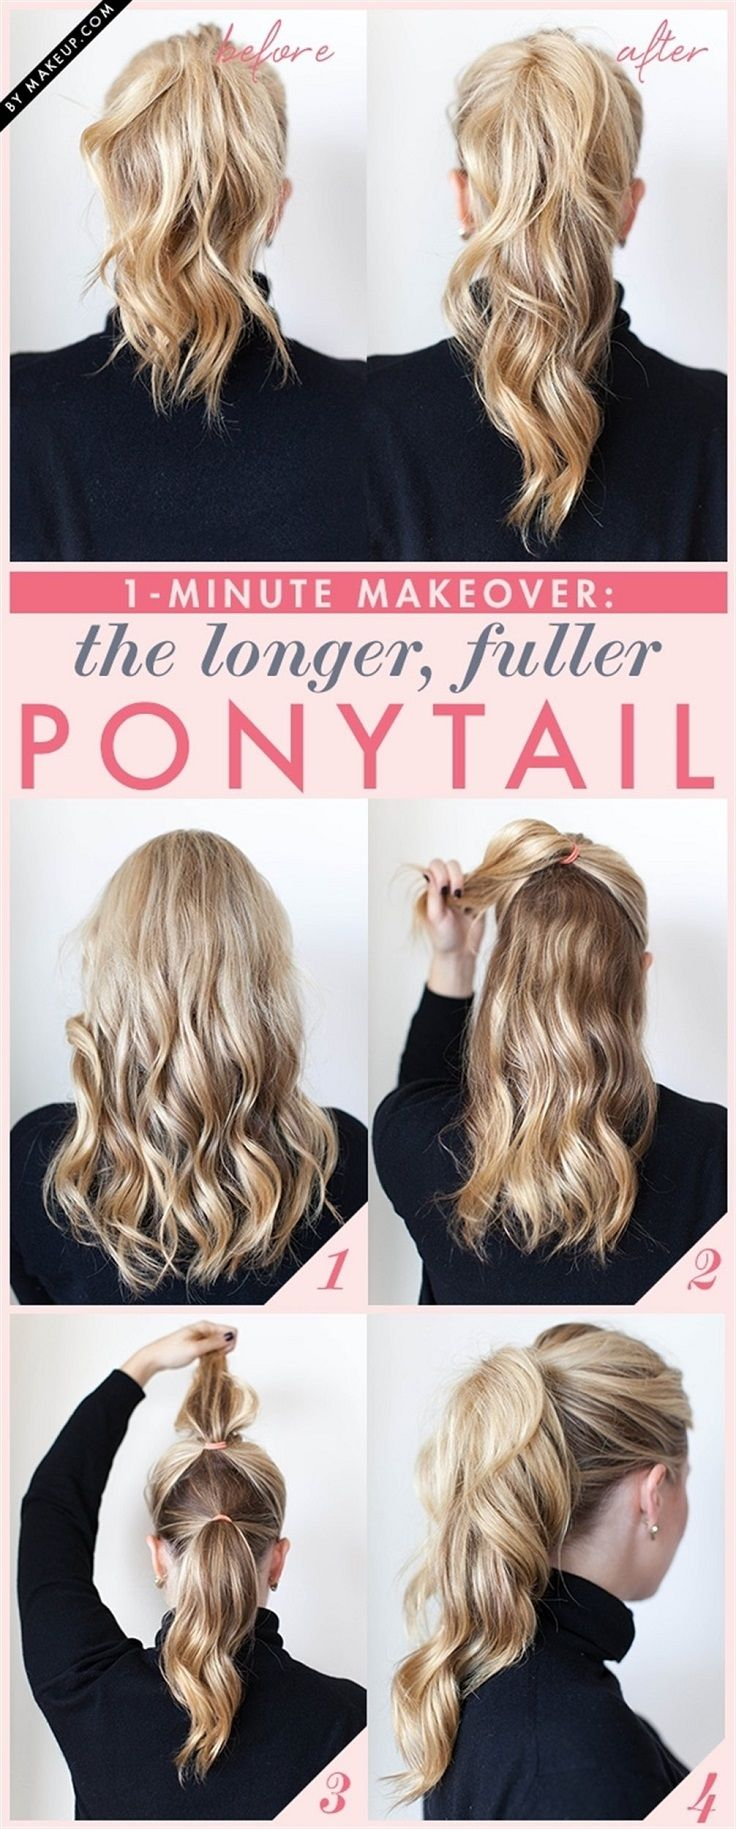 fuller-and-longer-ponytail